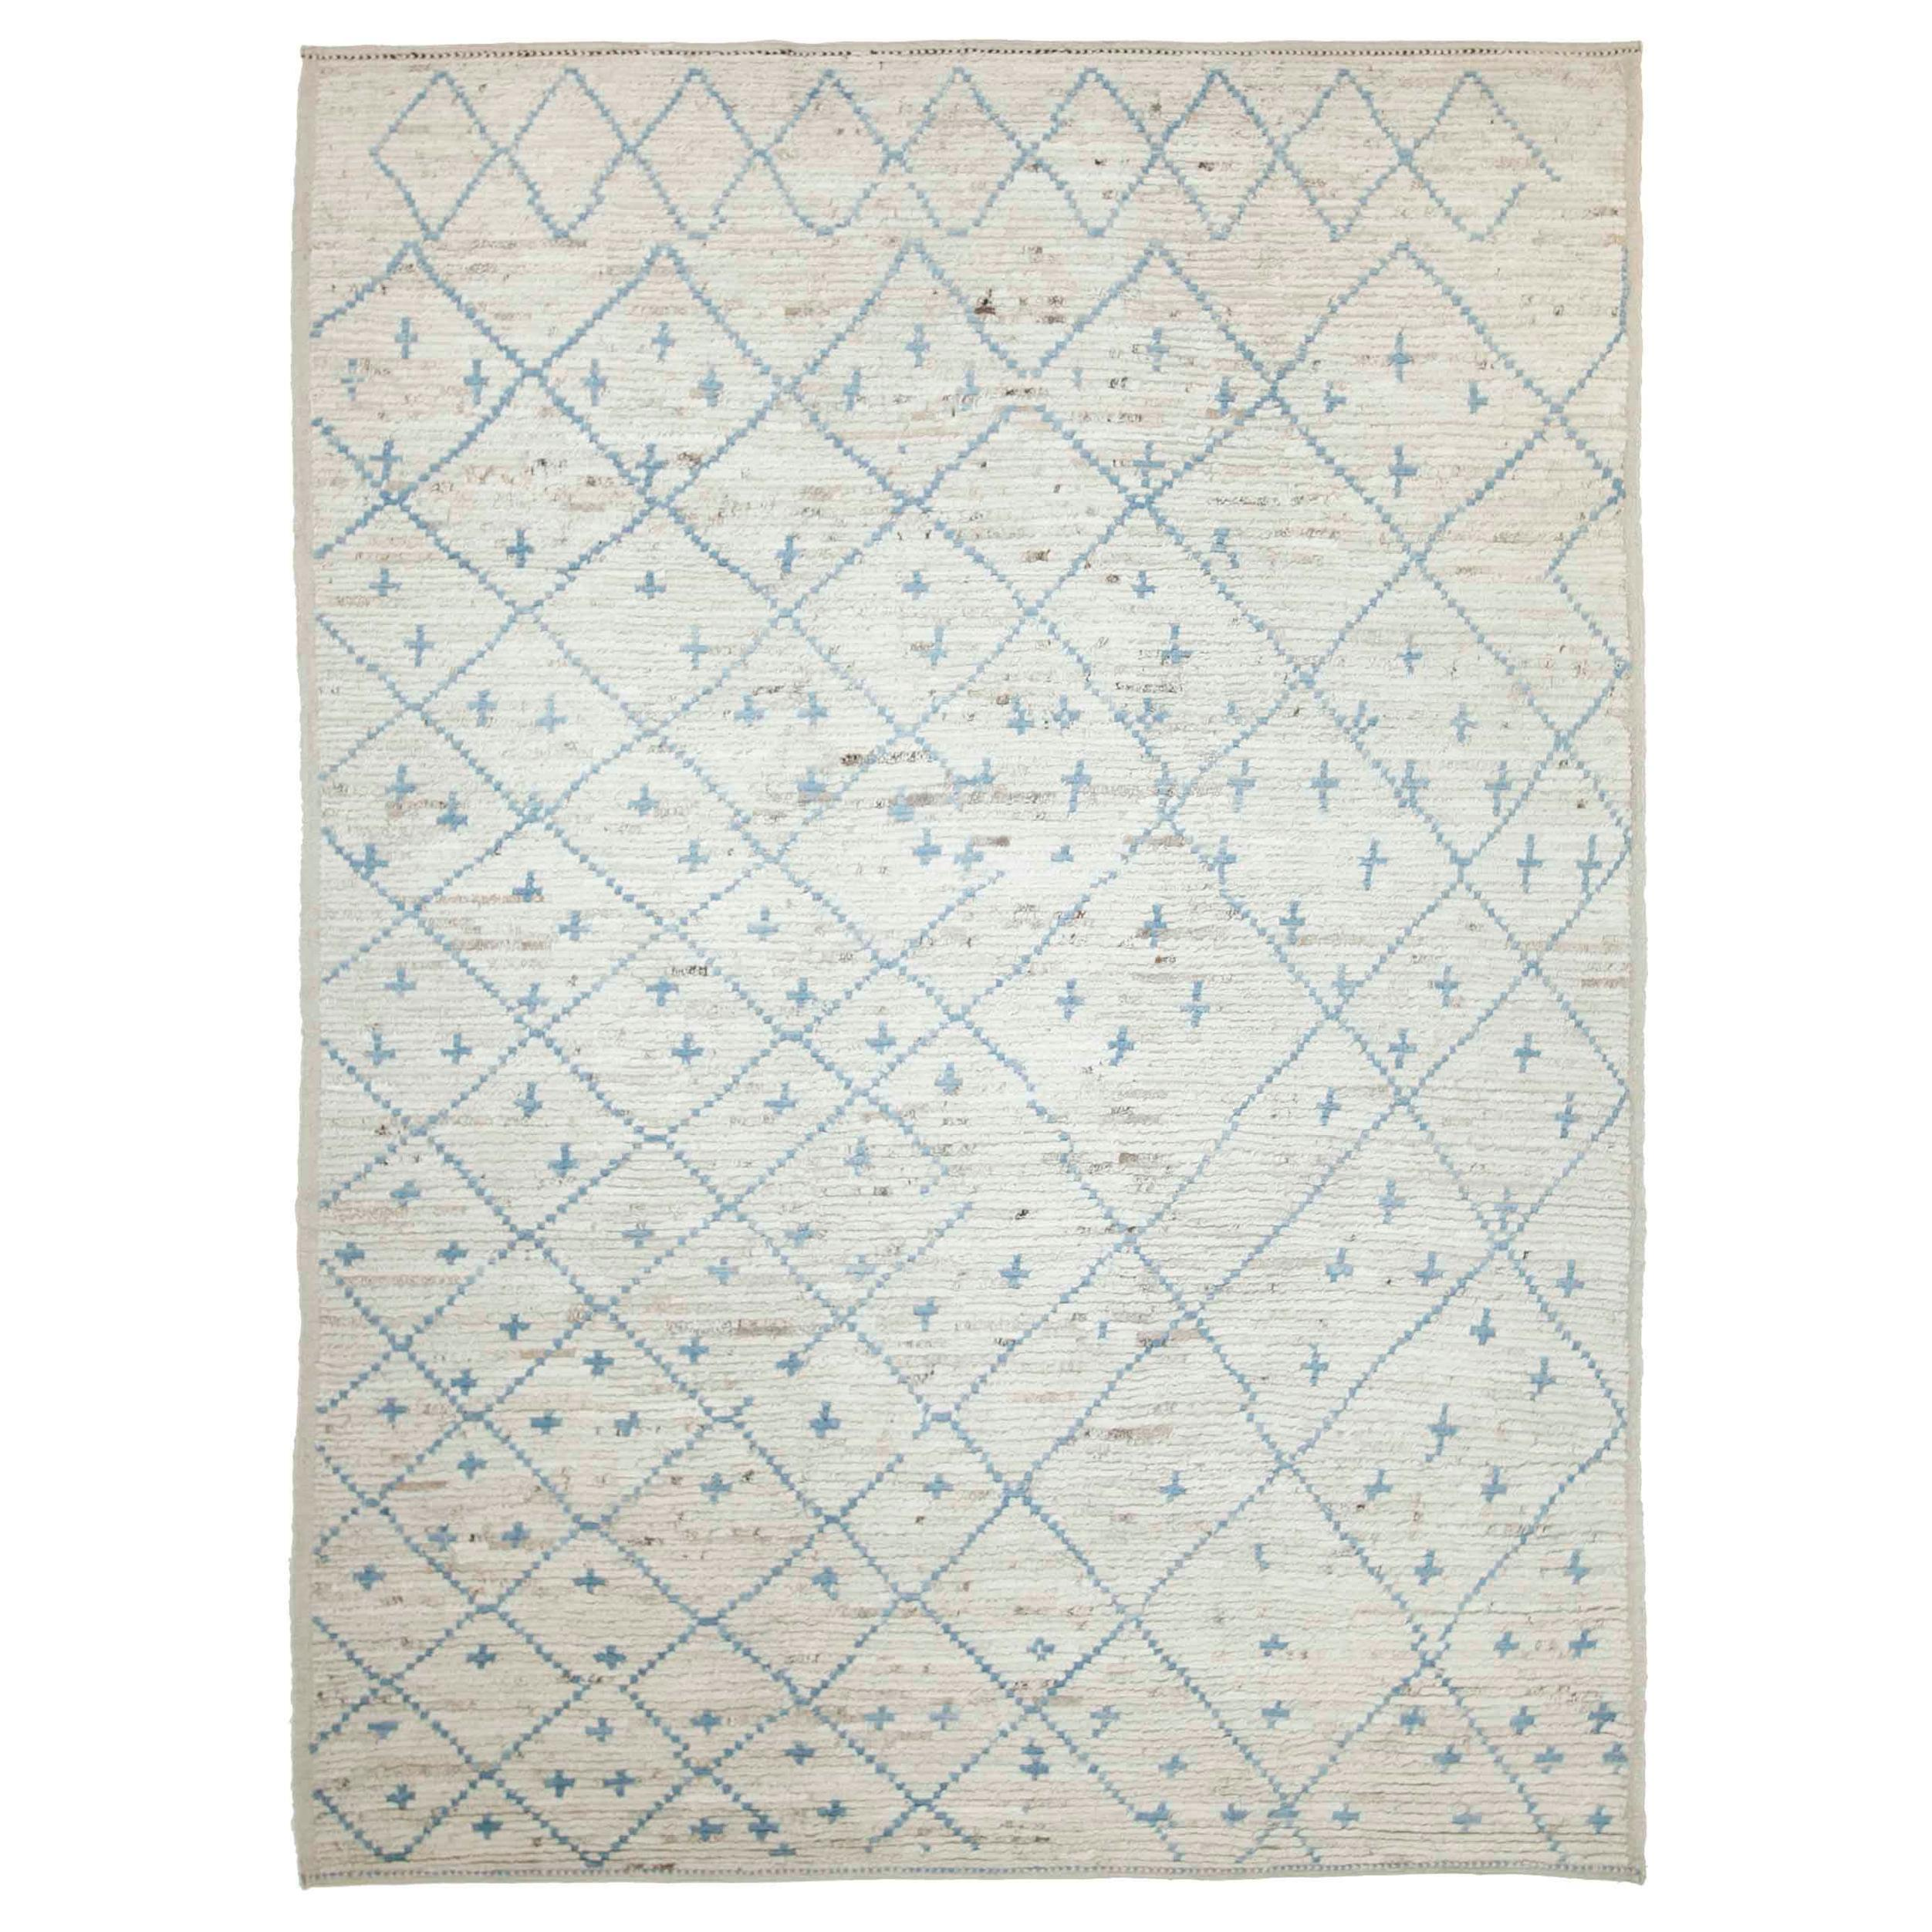 Modern Afghan Moroccan Style Rug with Blue Tribal Details on Ivory Field